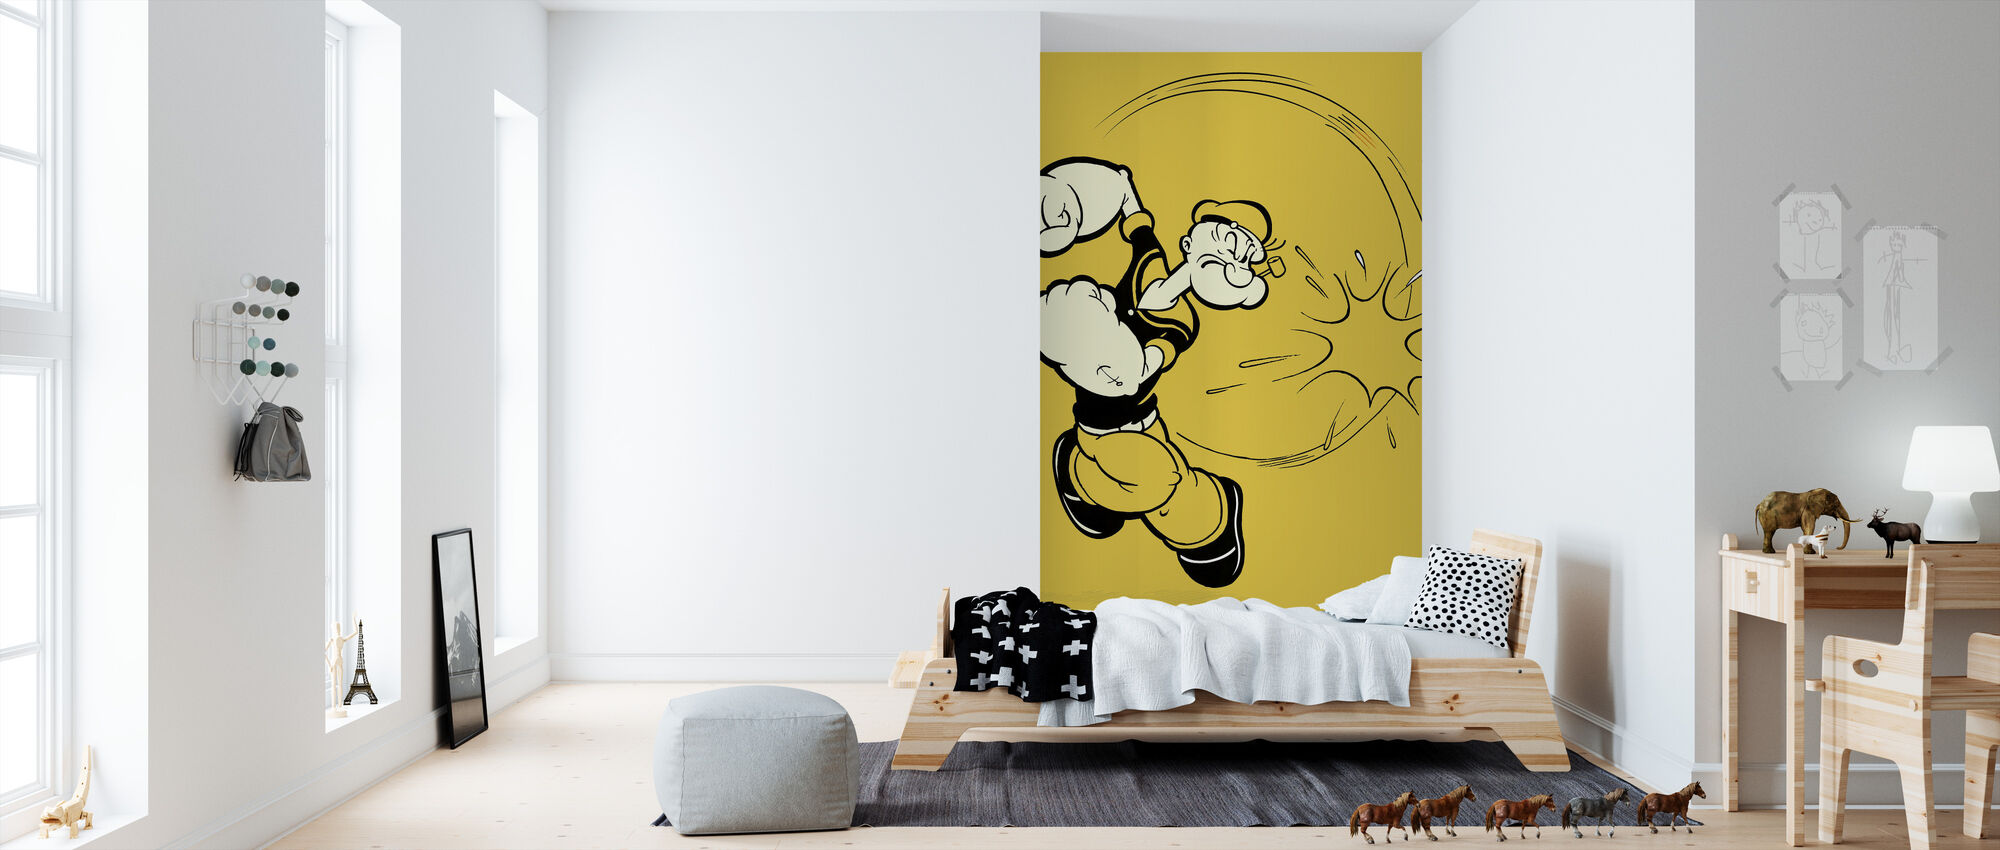 Popeye Punch - Wallpaper - Kids Room